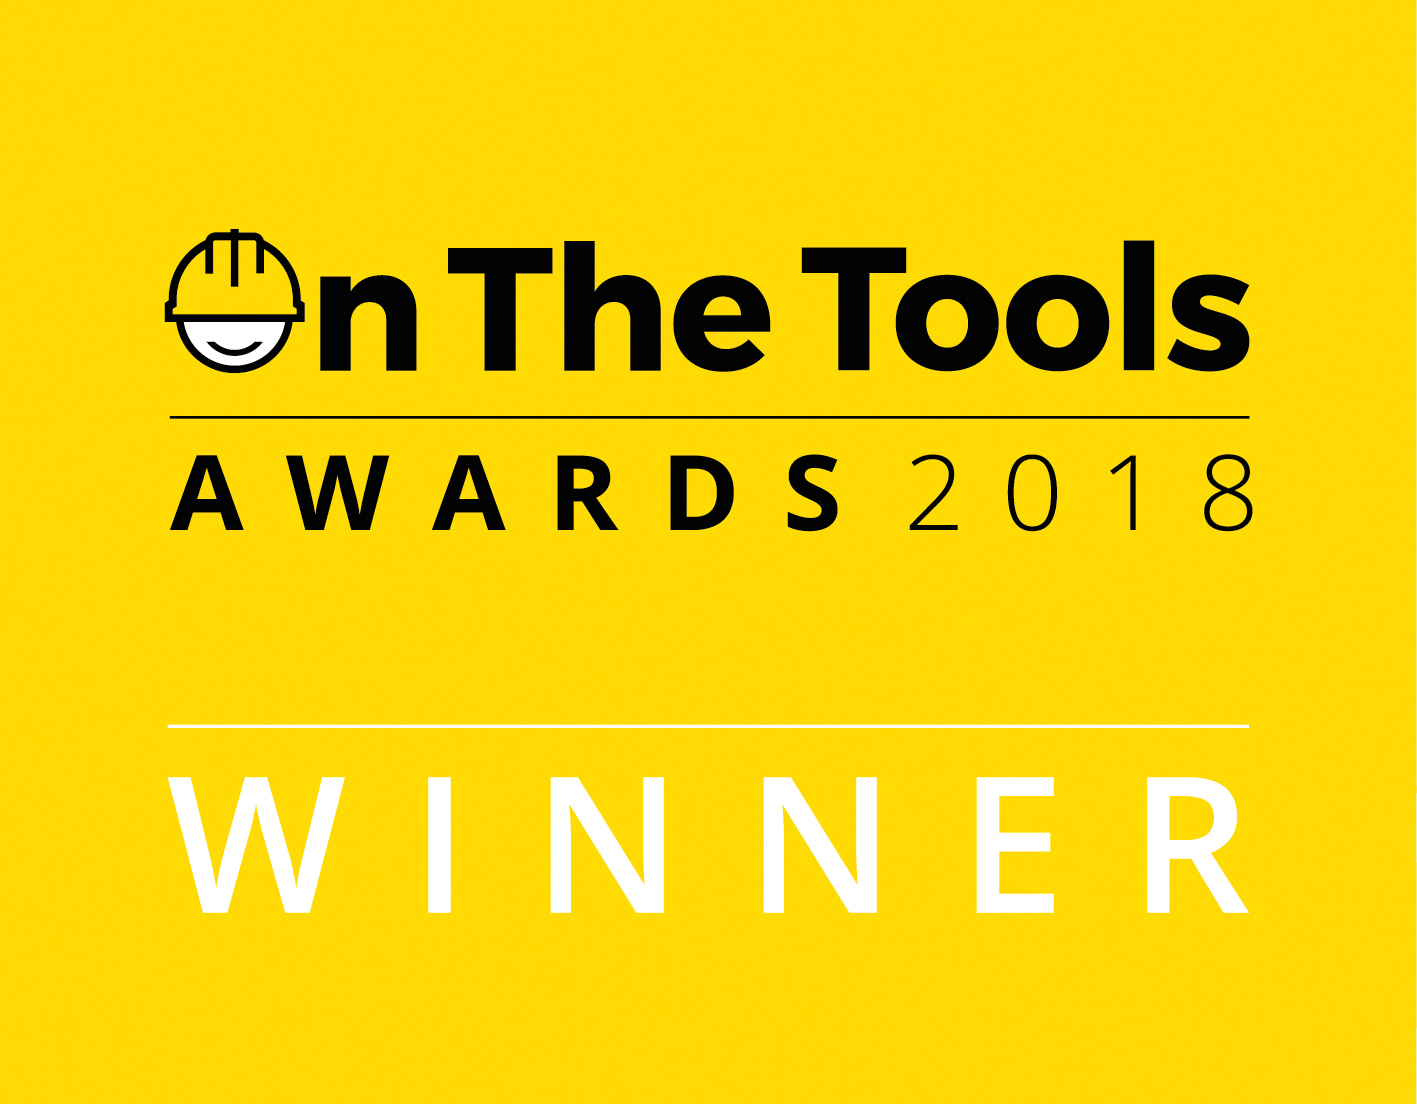 On The Tools Award 2018 Winner